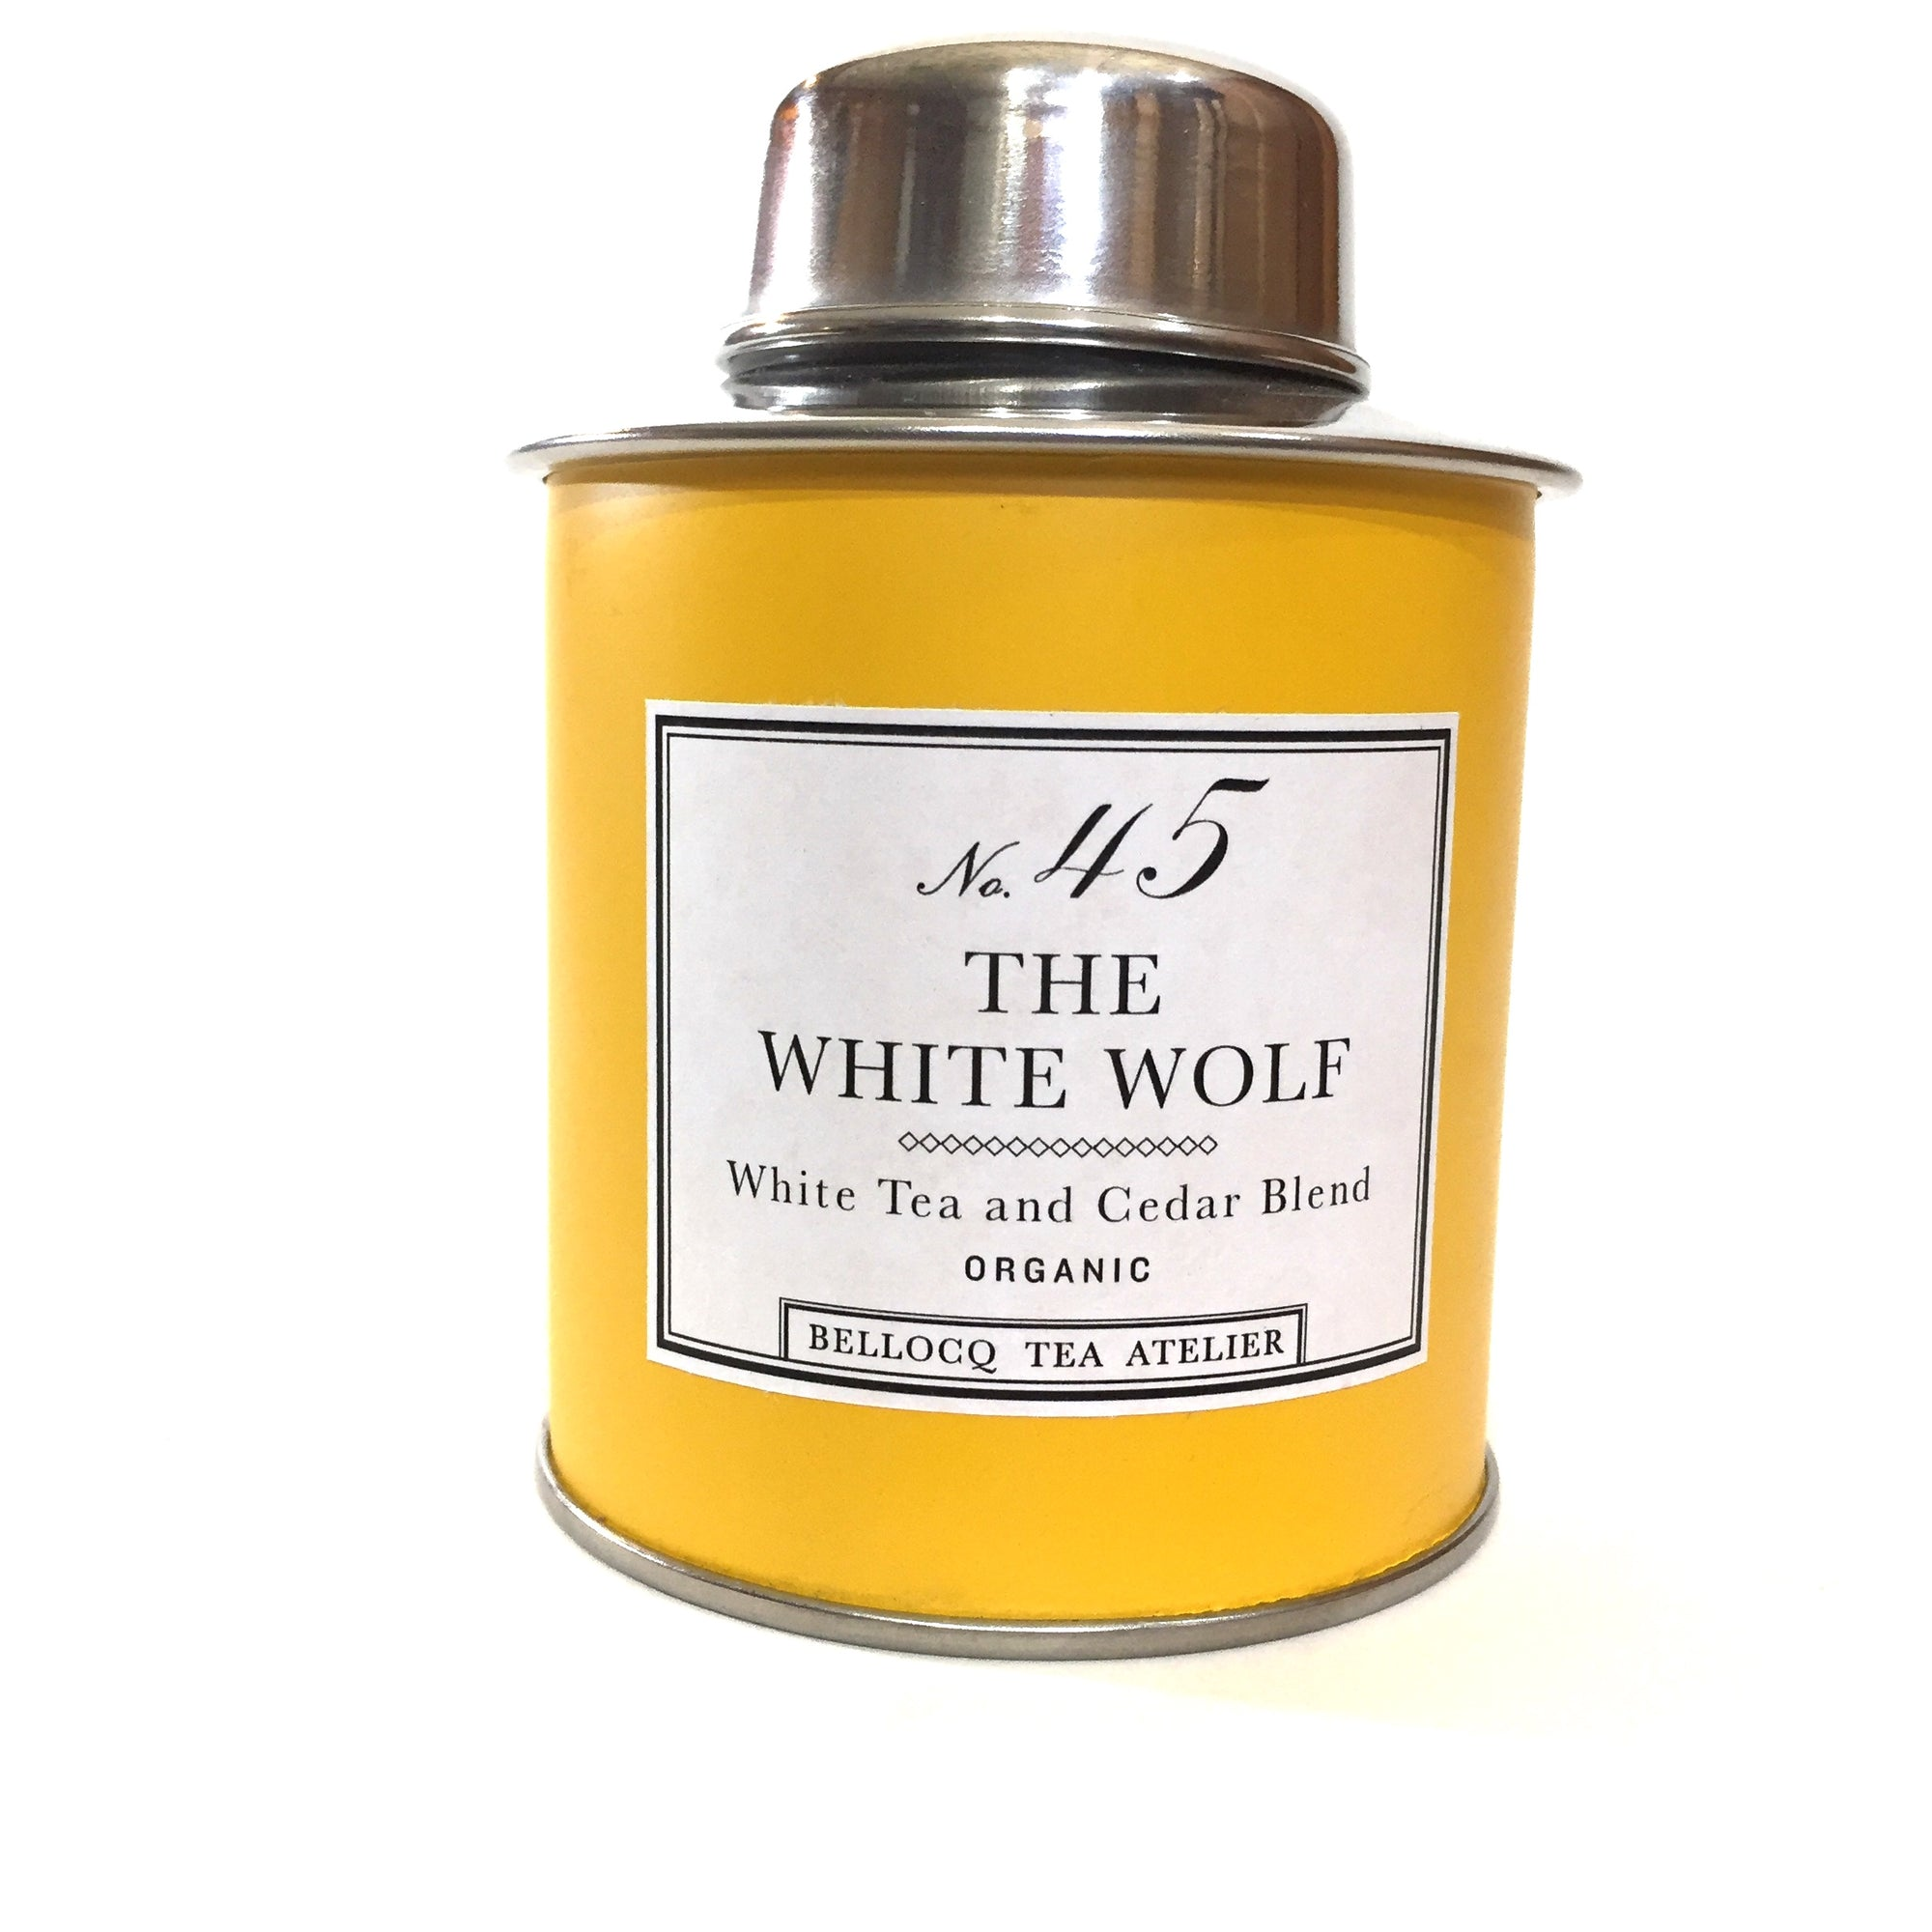 The White Wolf No. 45 Tea